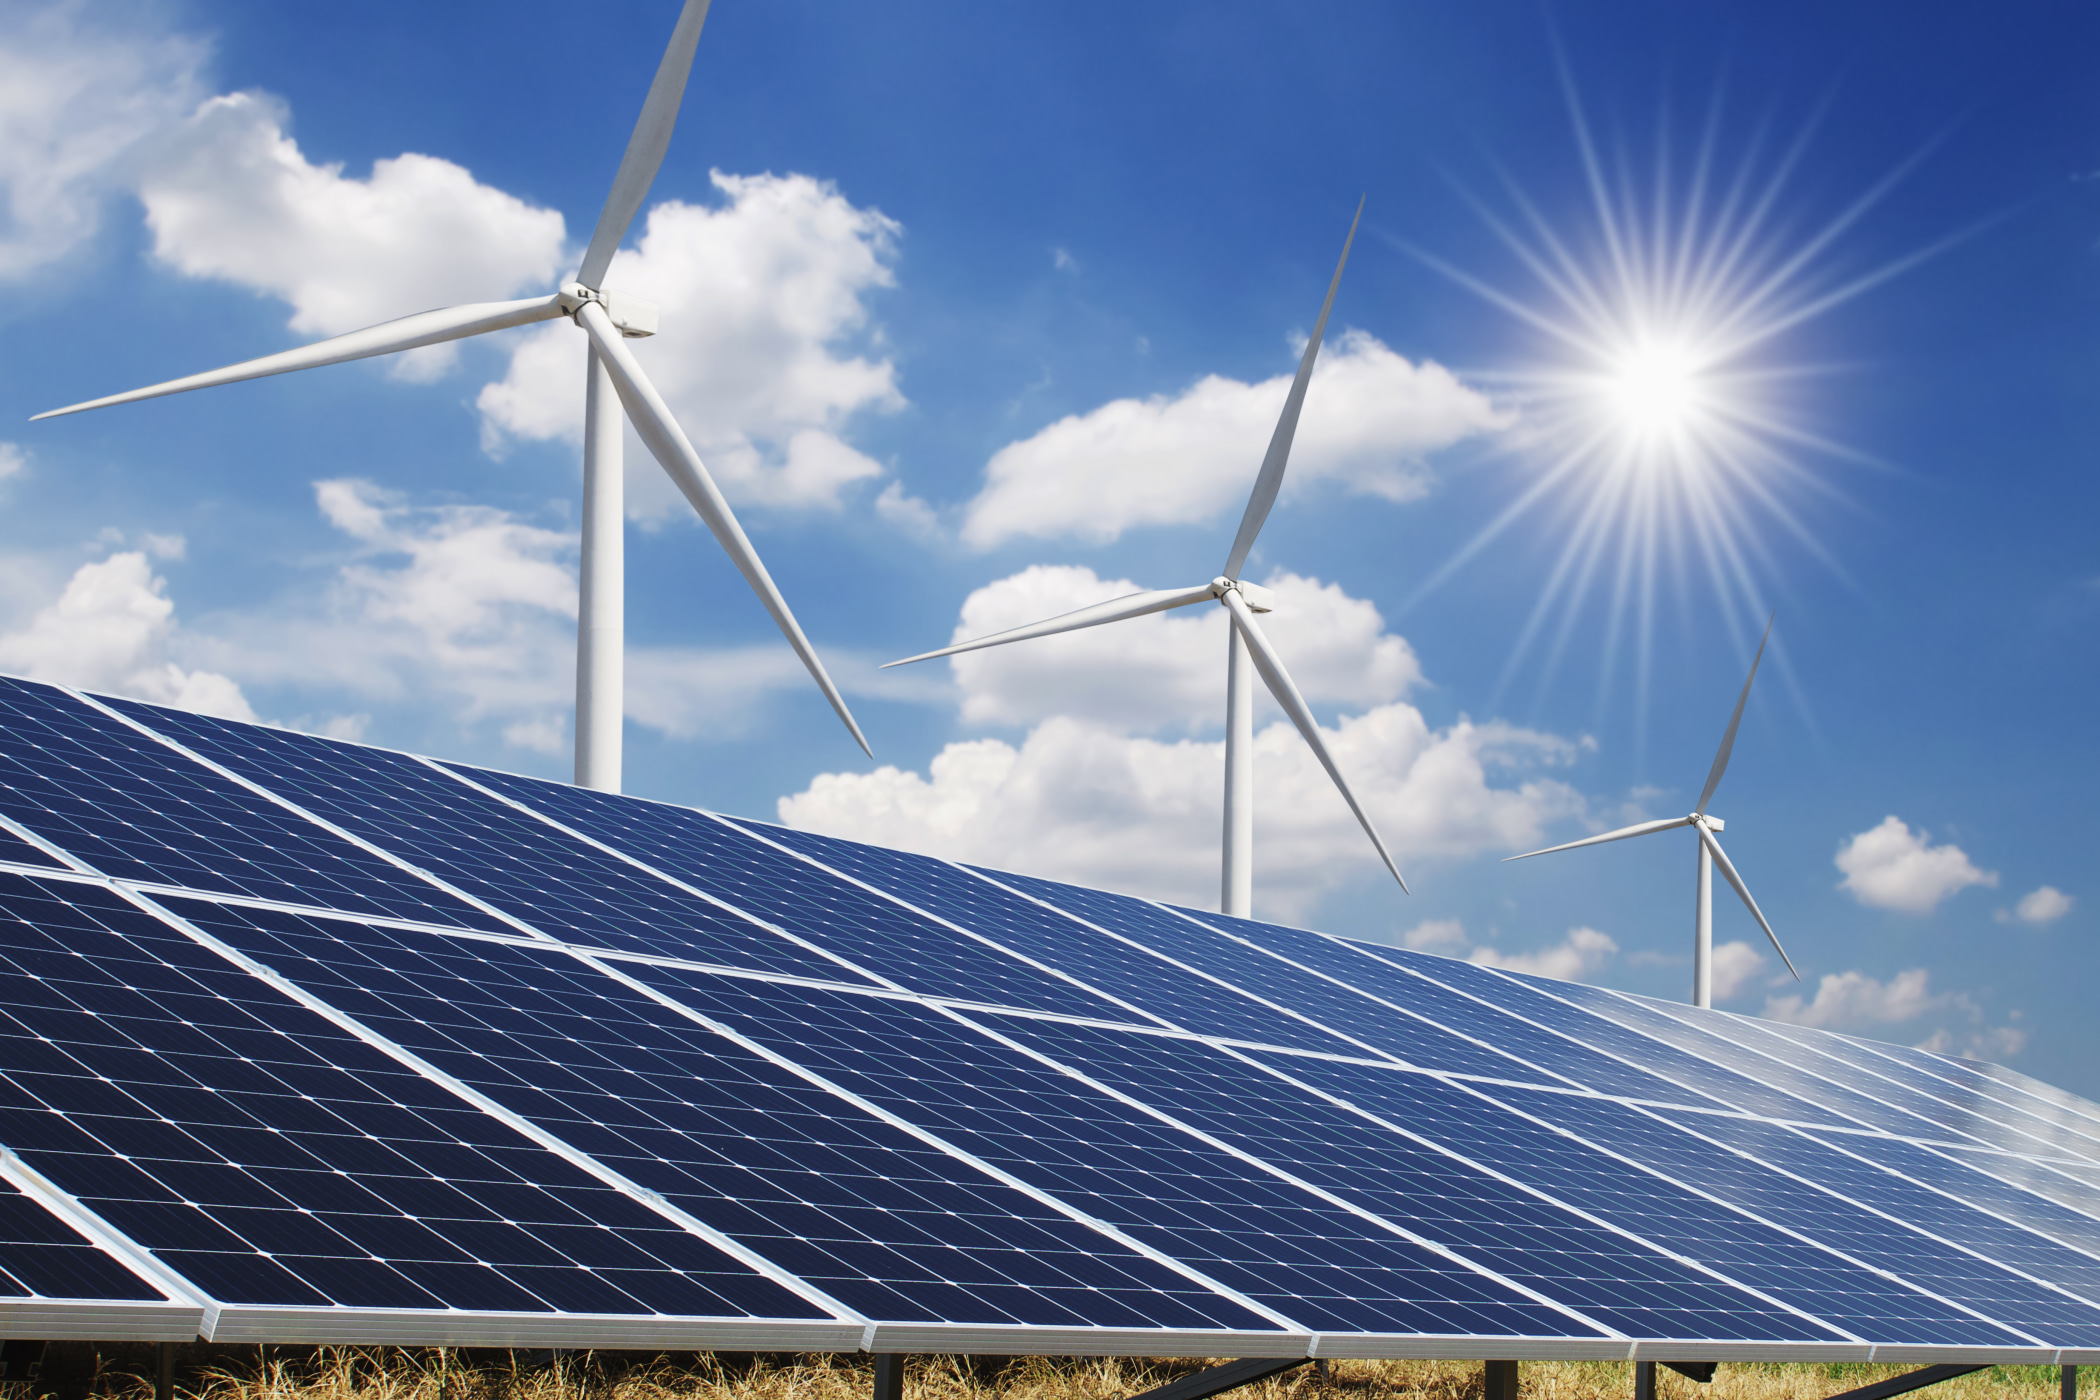 Adopting alternative energy sources such as solar and wind power is one way to combat the climate crisis.